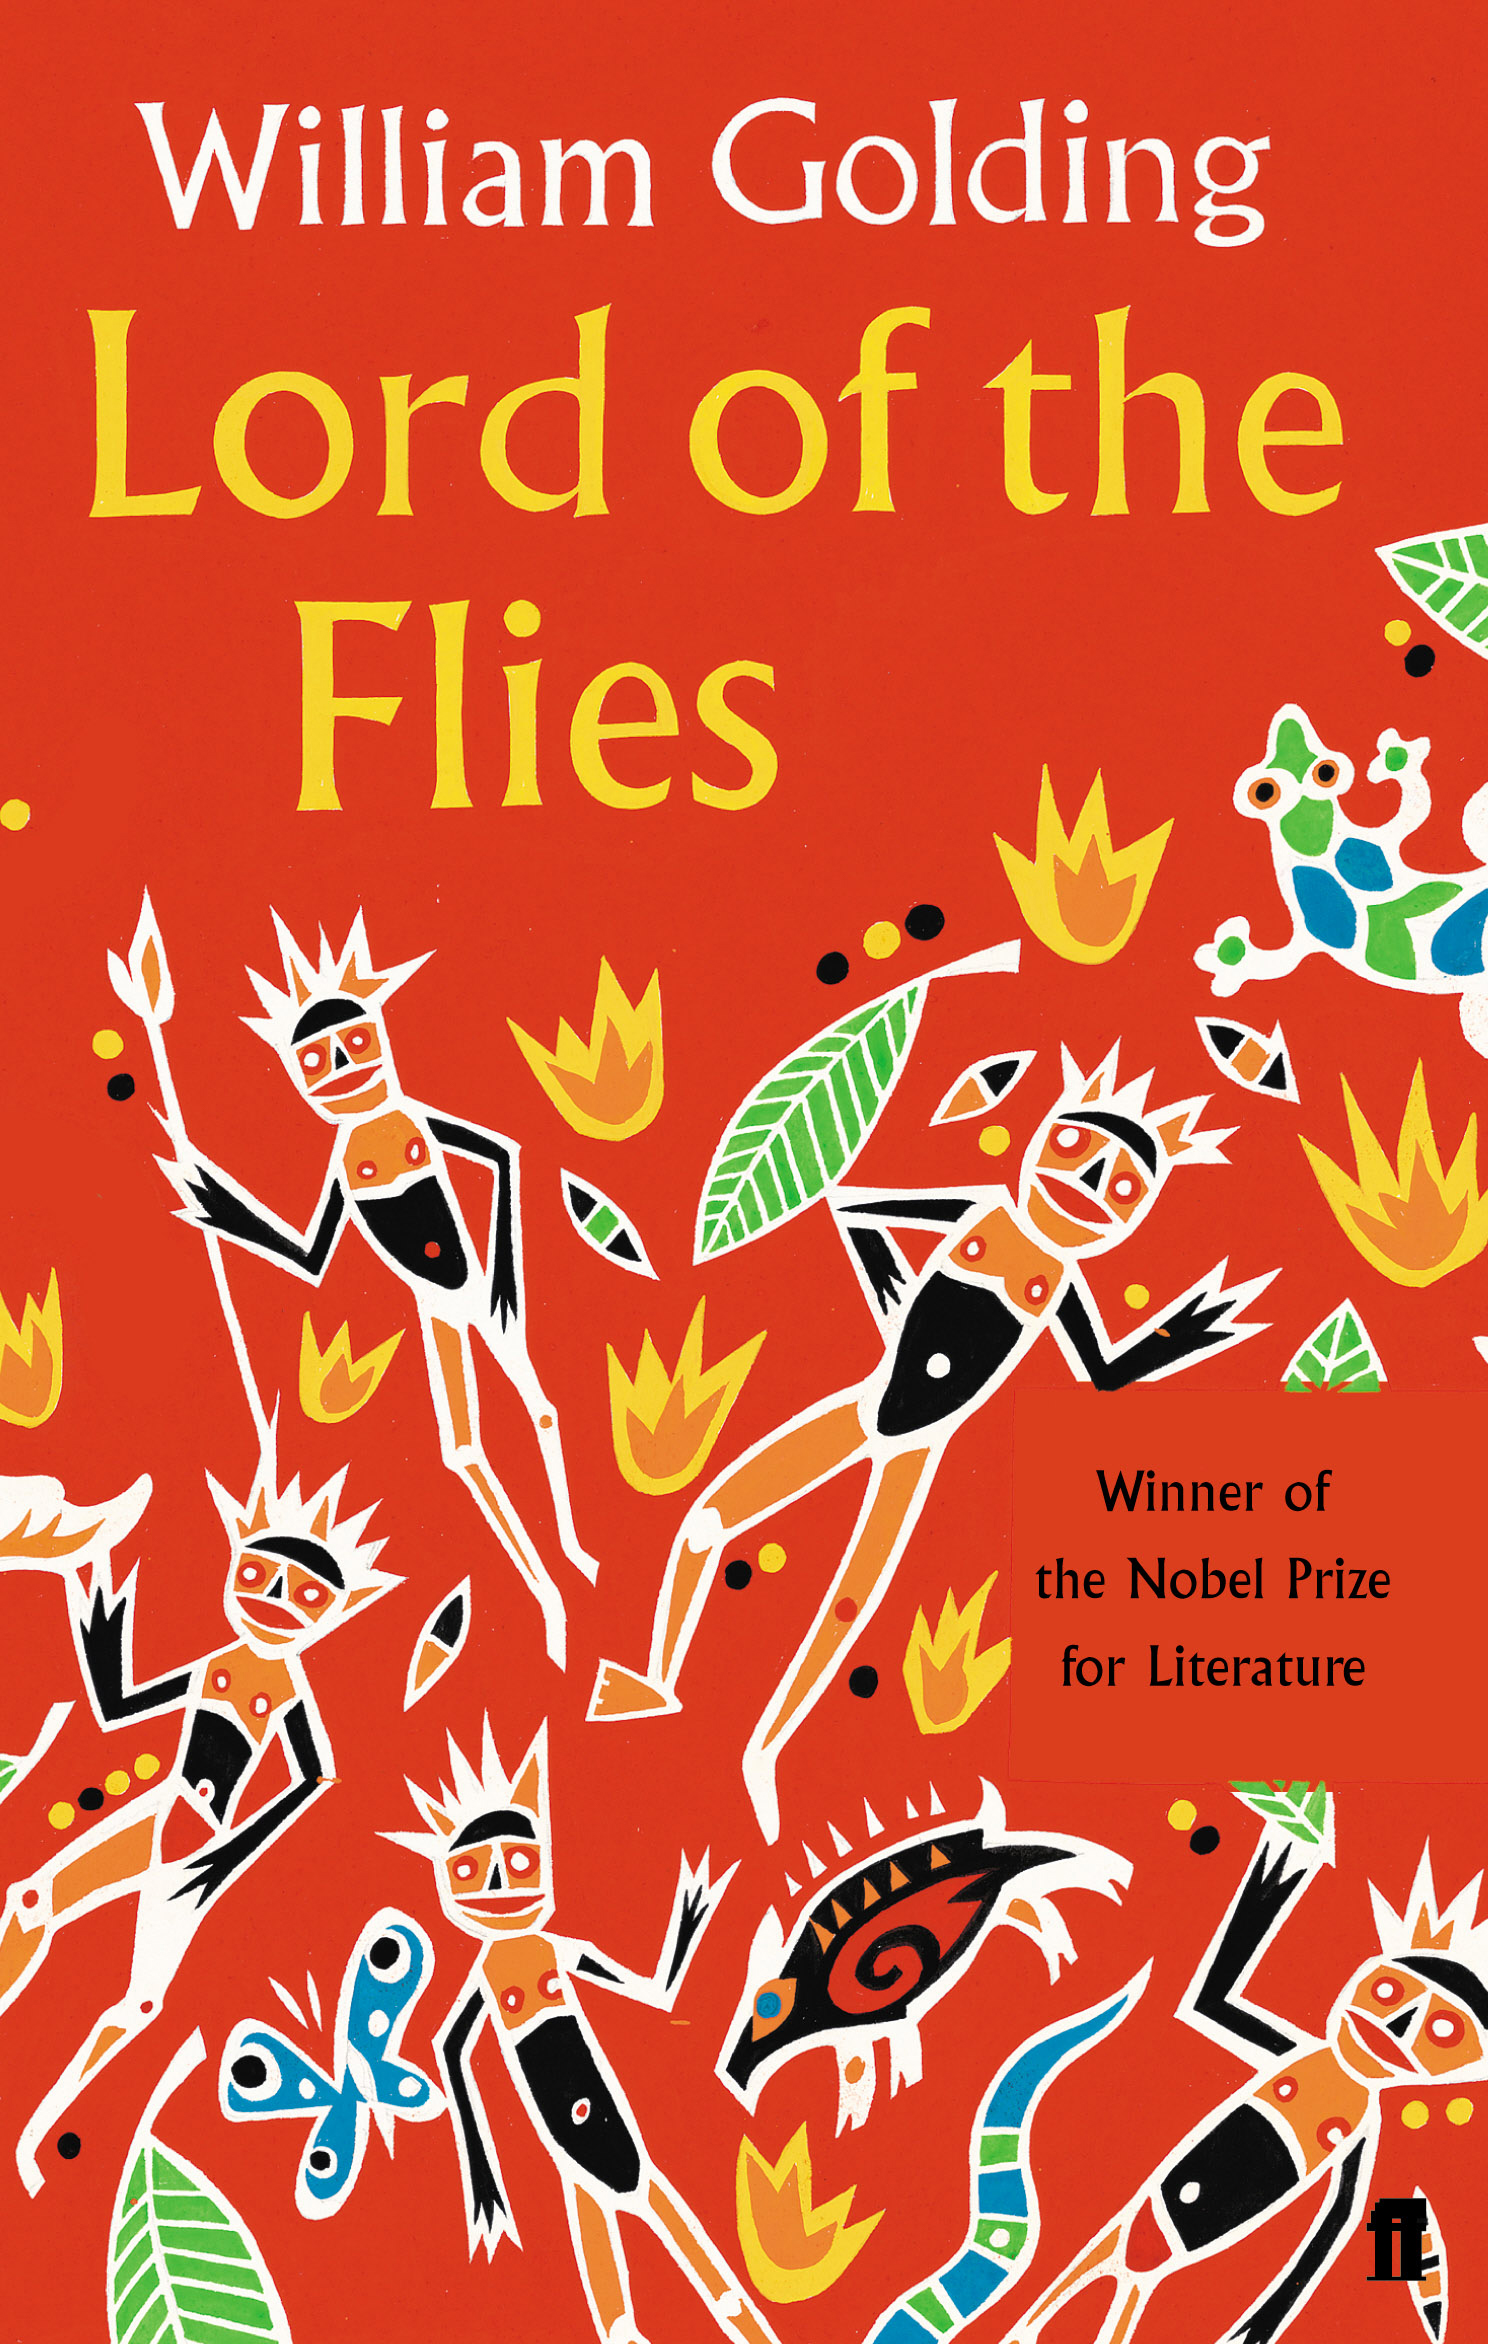 home lord of the flies libguides at ursula frayne catholic college